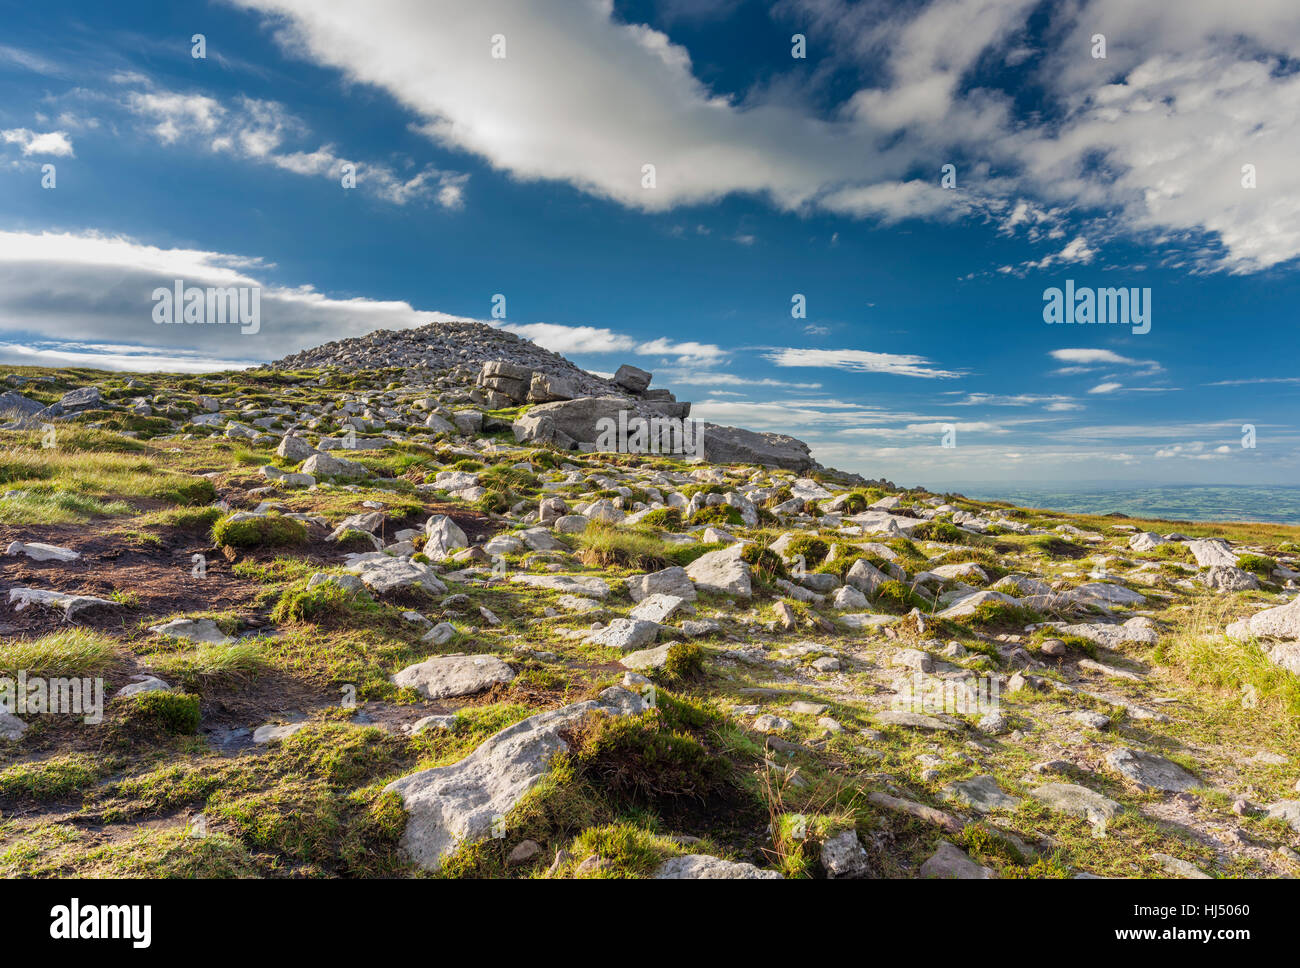 The large cairn at the summit of Slievenamon, County Tipperary, Ireland Stock Photo